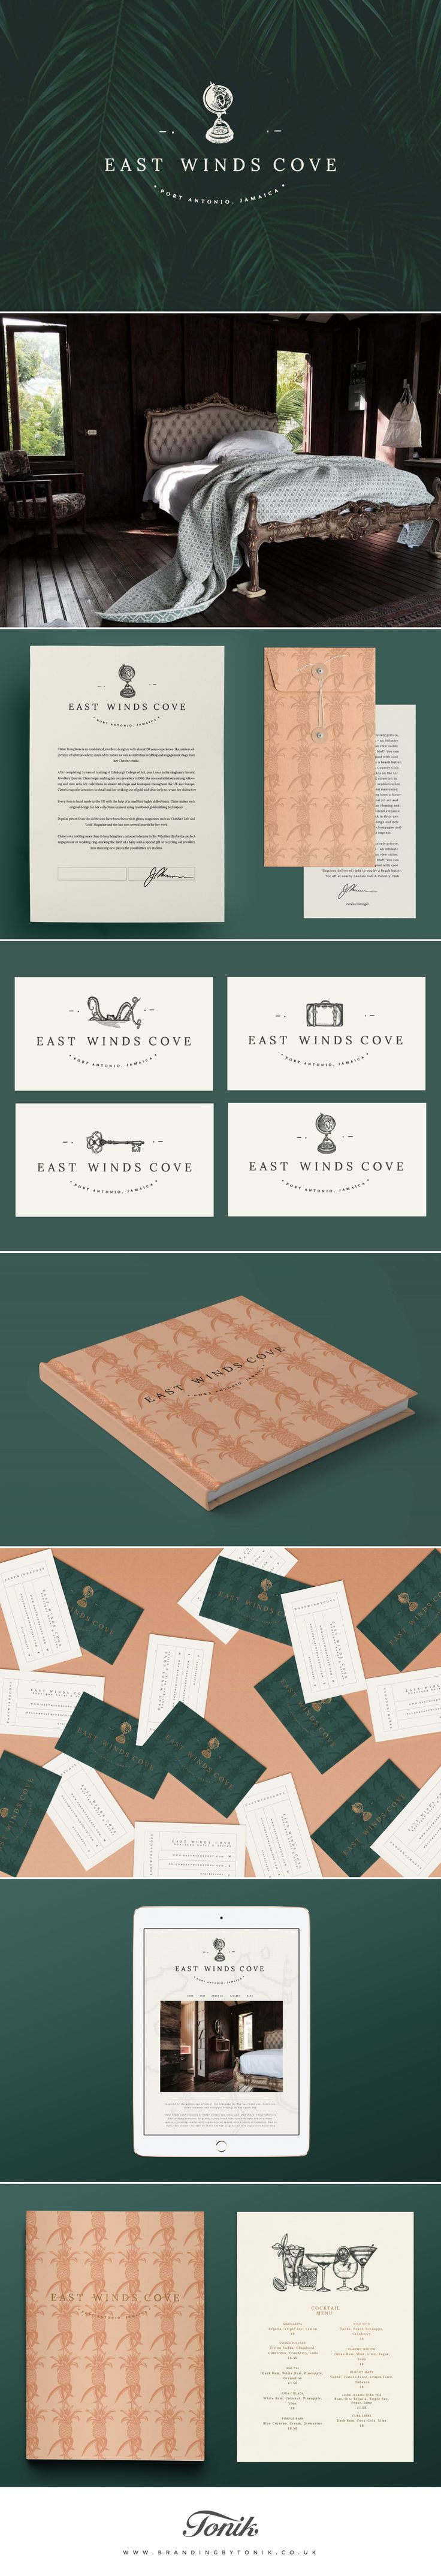 New branding identity for East Winds Cove by Branding by Tonik. The design is reminiscent of nostalgic times and features etched-style illustrations inspired by colonial imagery and the golden age of travel.